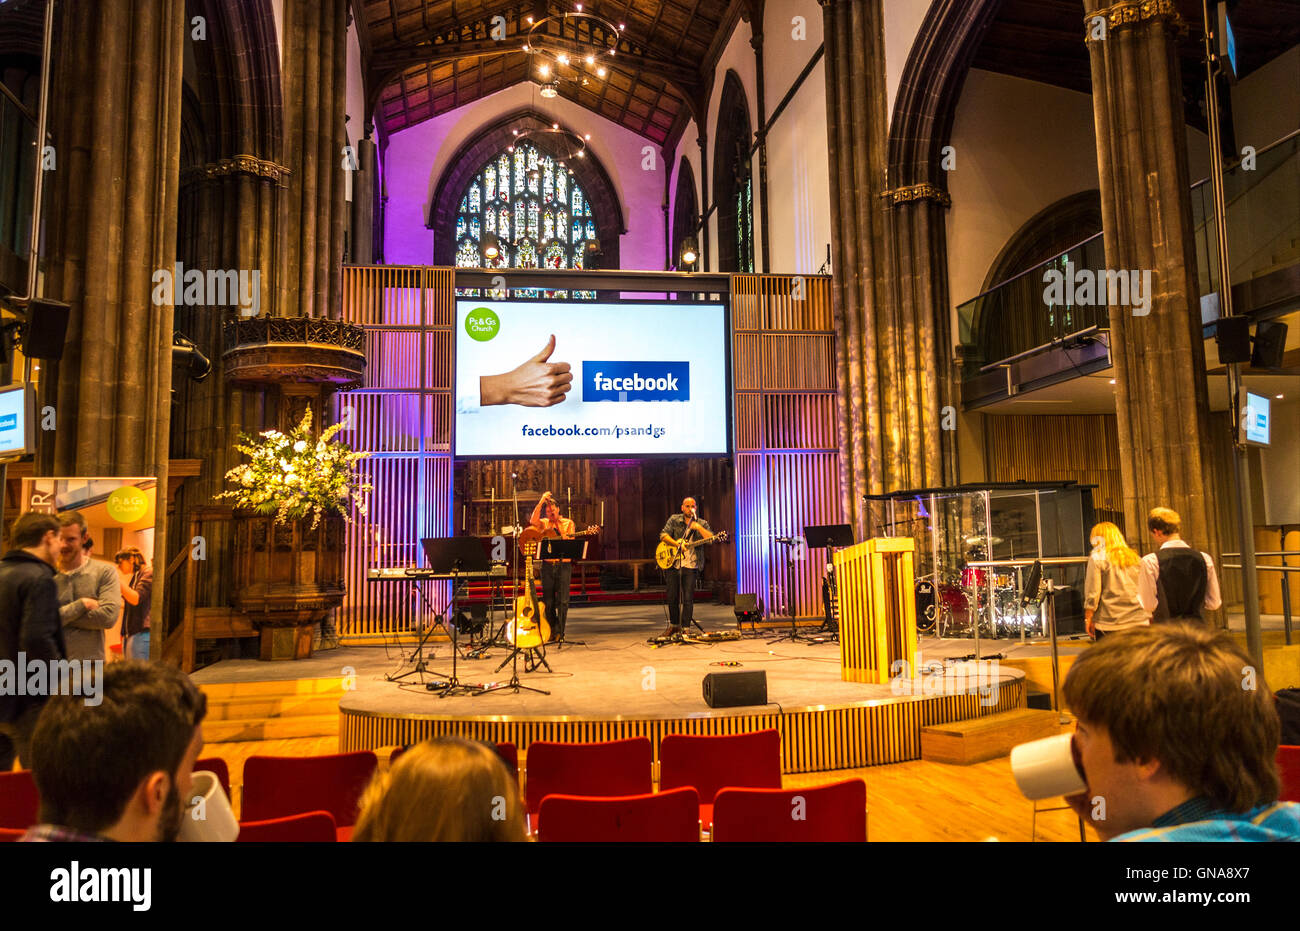 Facebook Like screen in St Paul's & St George's Church in Edinburgh. Church using social media. - Stock Image